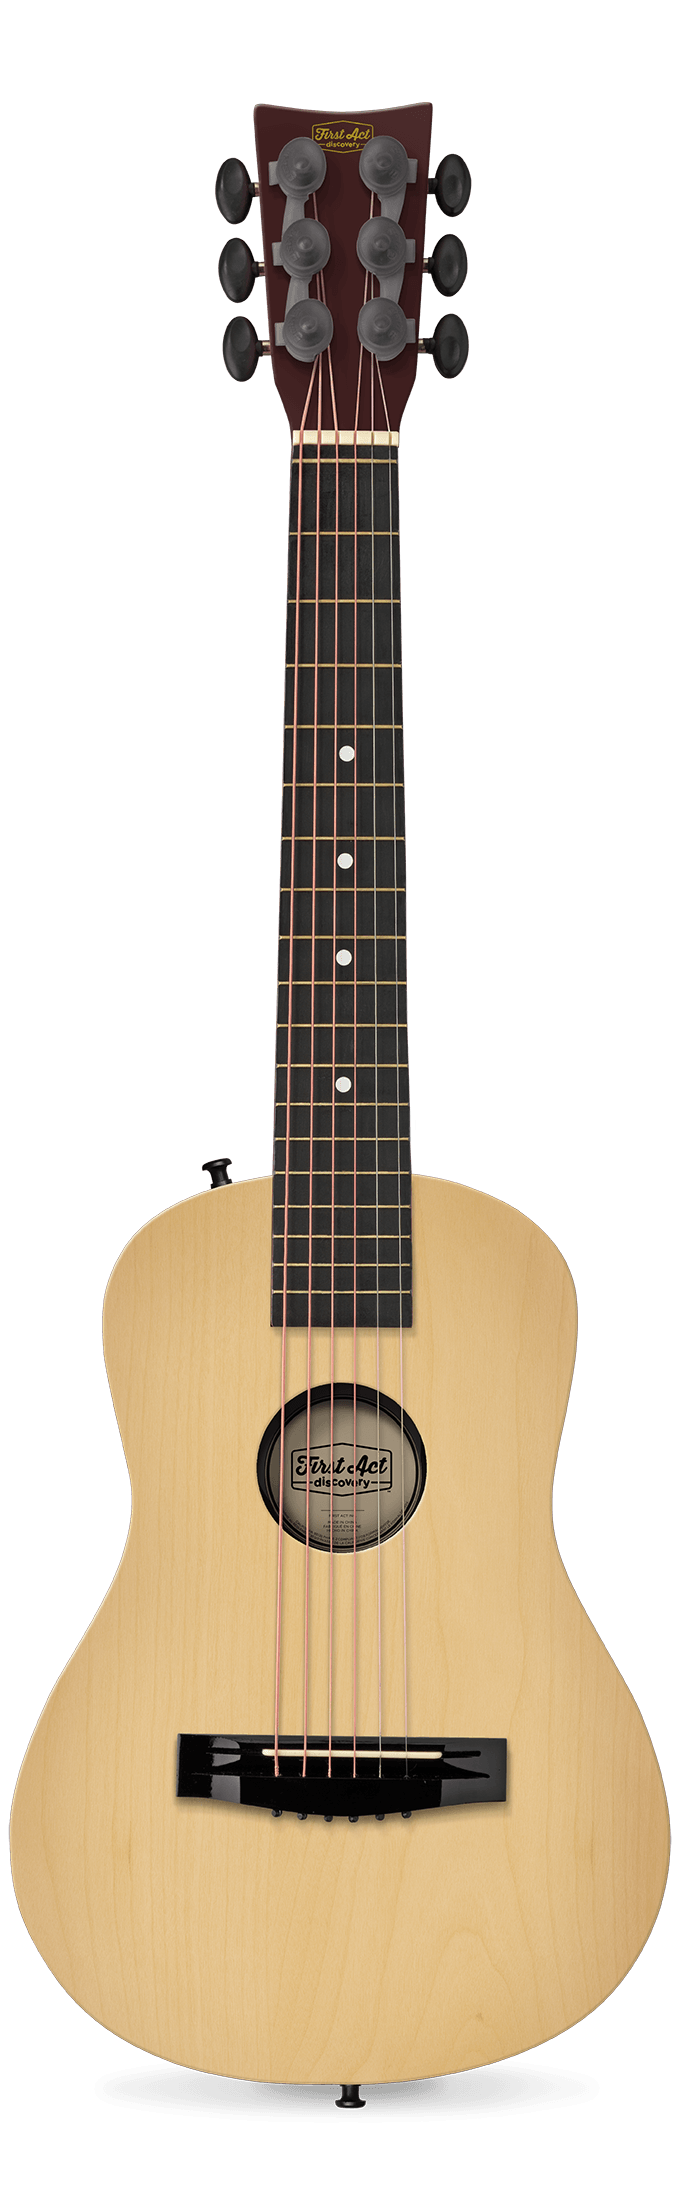 "Natural 30""Acoustic Guitar 